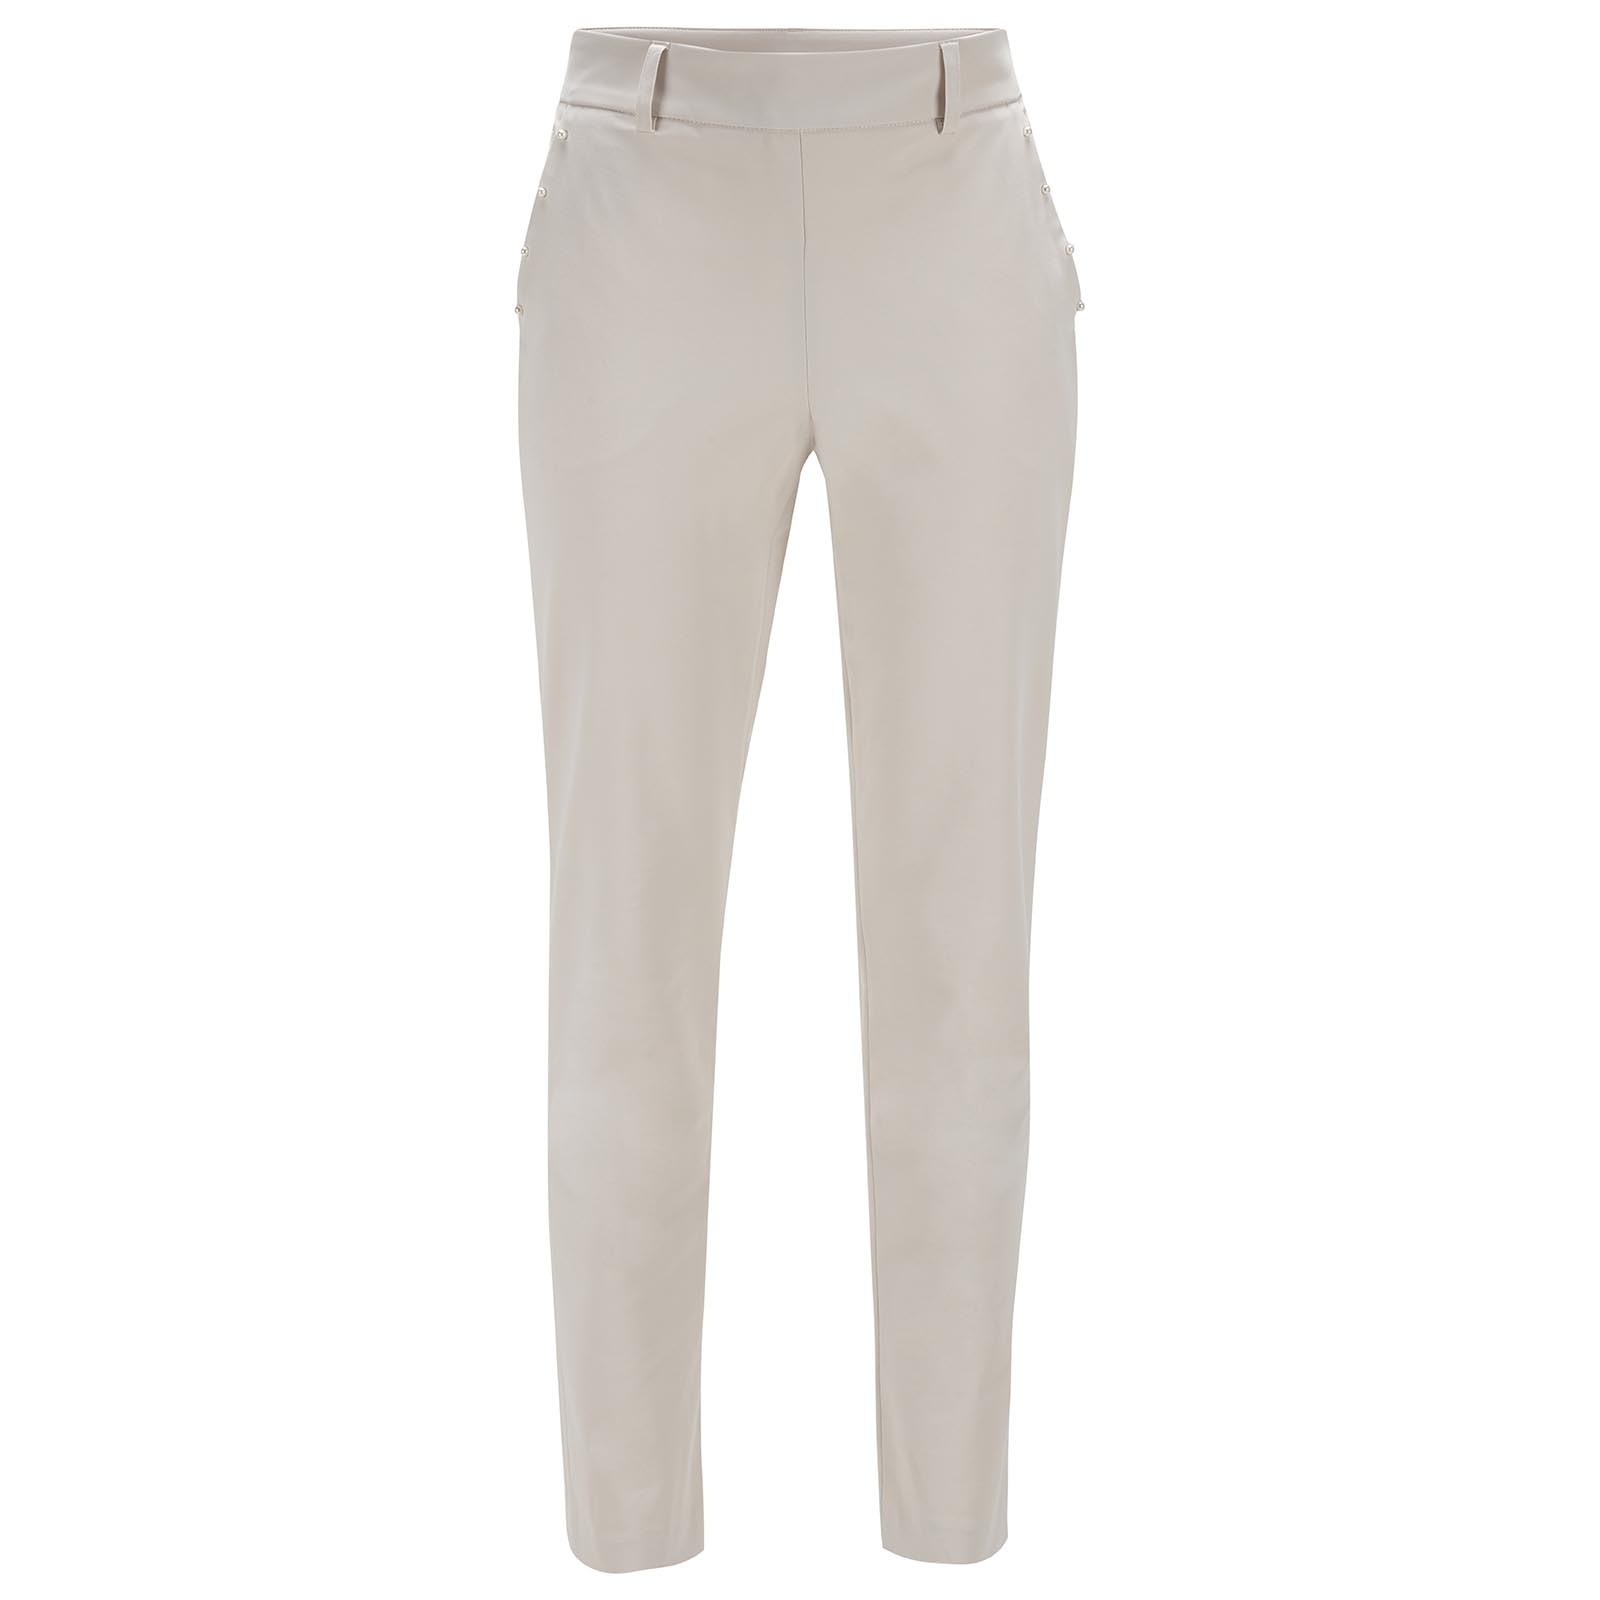 Ladies' 7/8 golf trousers made of lightweight stretch material for a slim fit